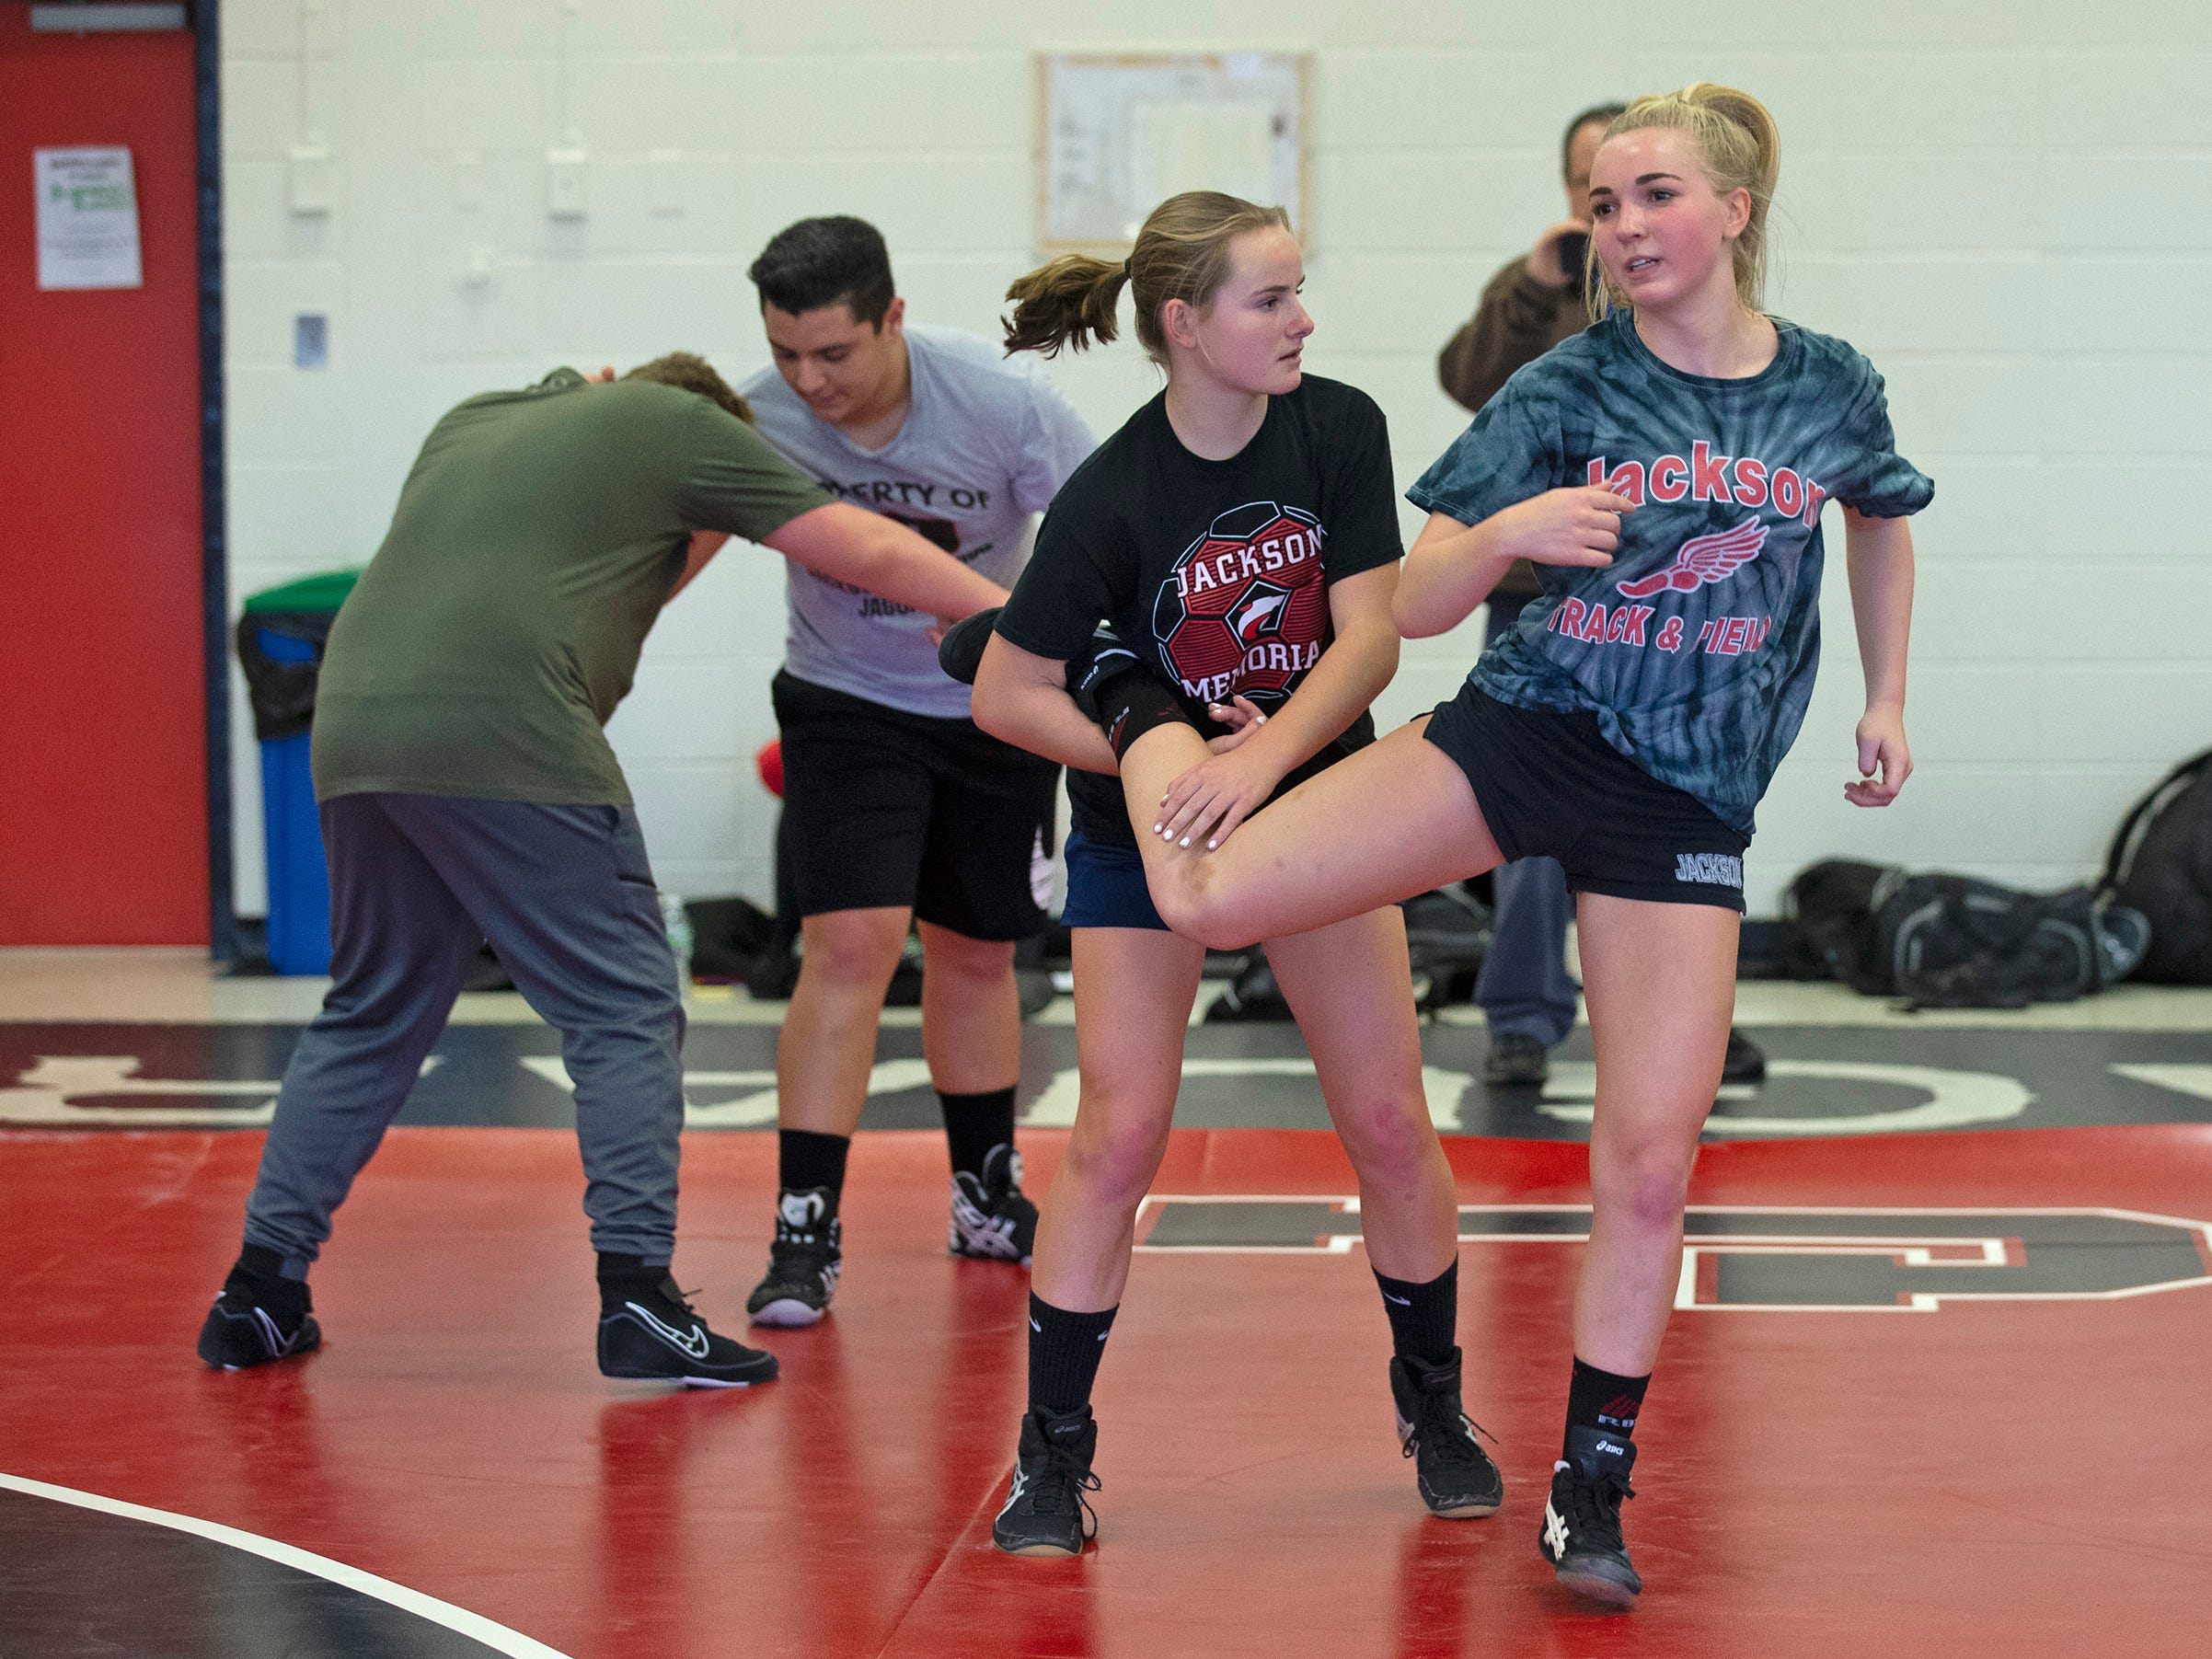 Hannah Reese and Avery Meyers  team up for warm up moves at the beginning of practice. NJSIAA is offering wrestling for girls this year and they will participate in an all girls tournament at the end of the season. Jackson Memorial Wrestling is fielding a full girls team this year. Boy and girls practice together although mostly match up with partners of their own sex for most drills.